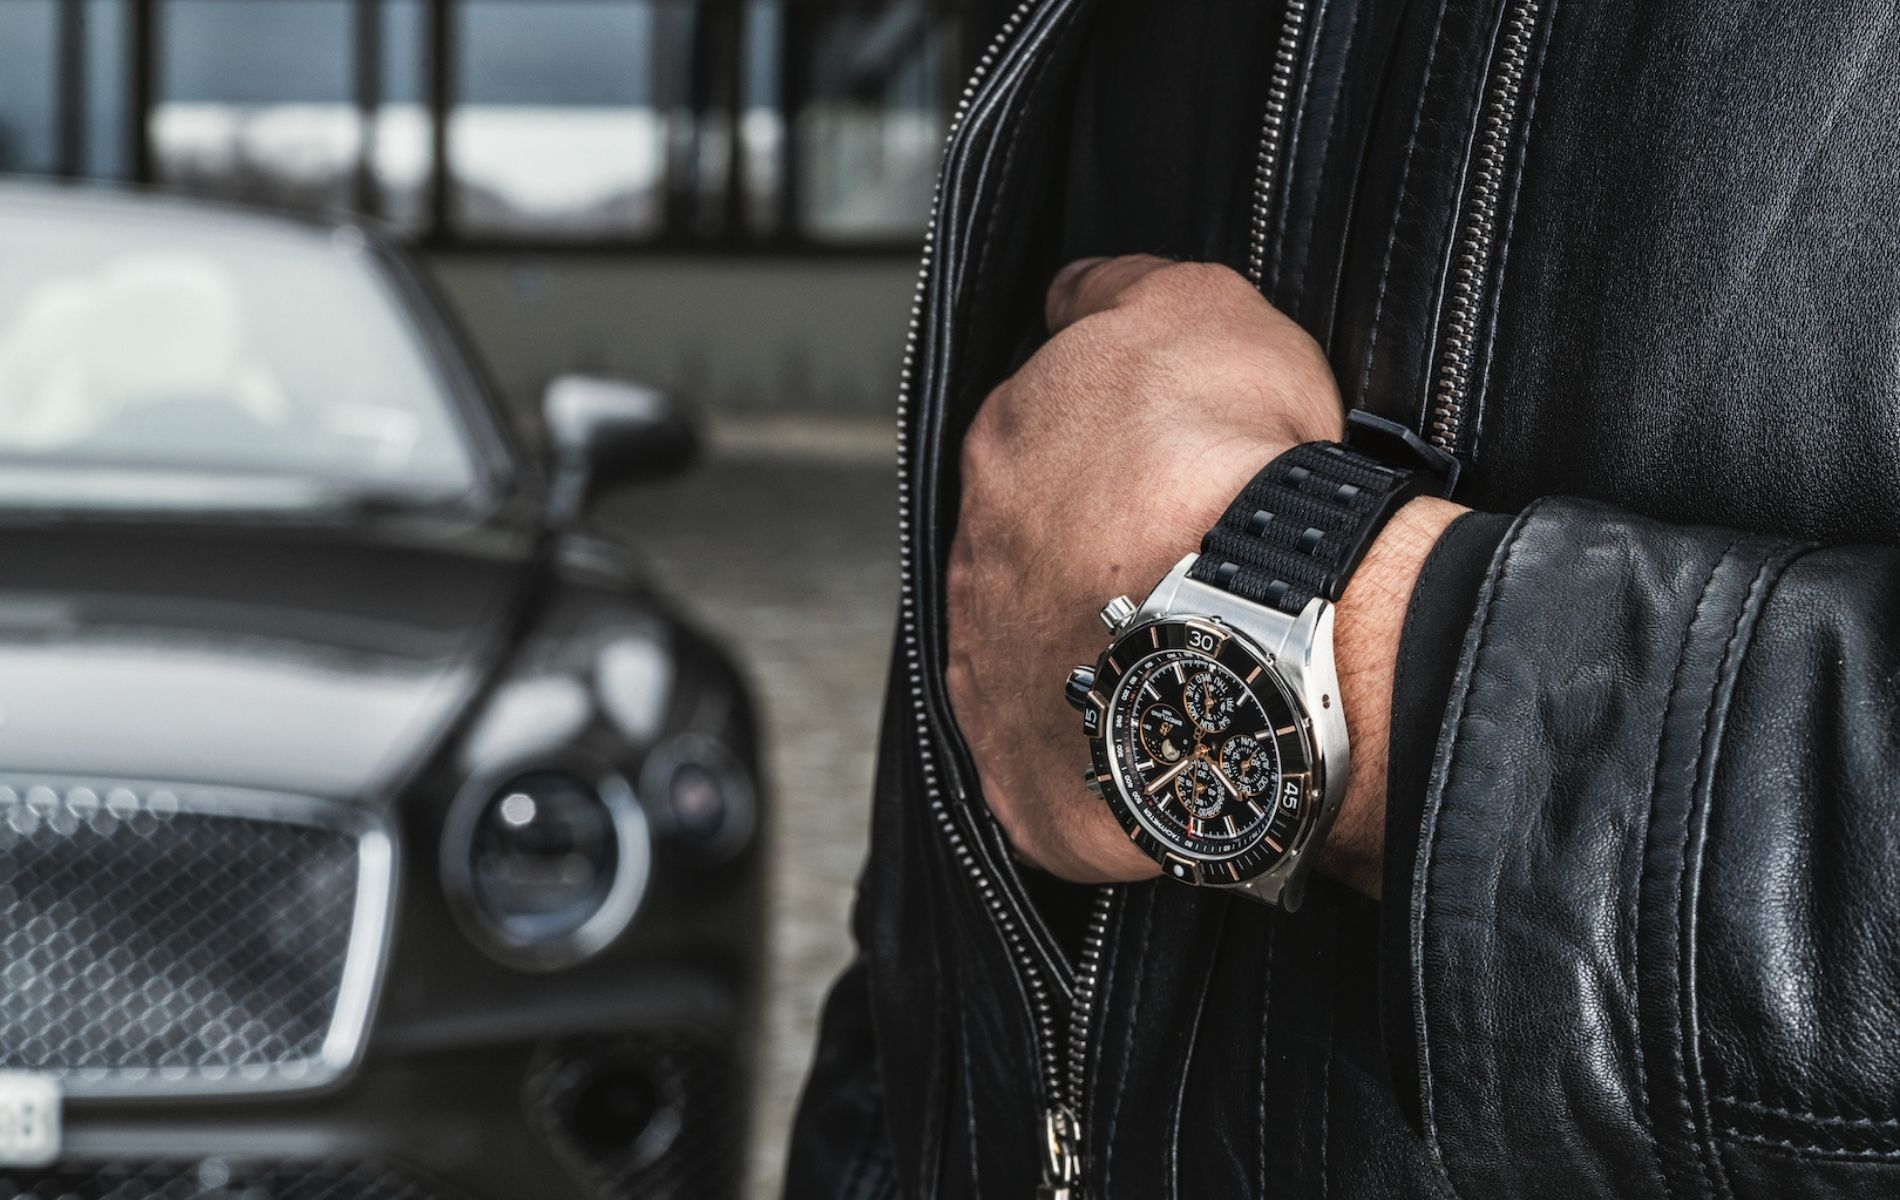 Breitling Super Chronomat Four-Year Calendar with black dial